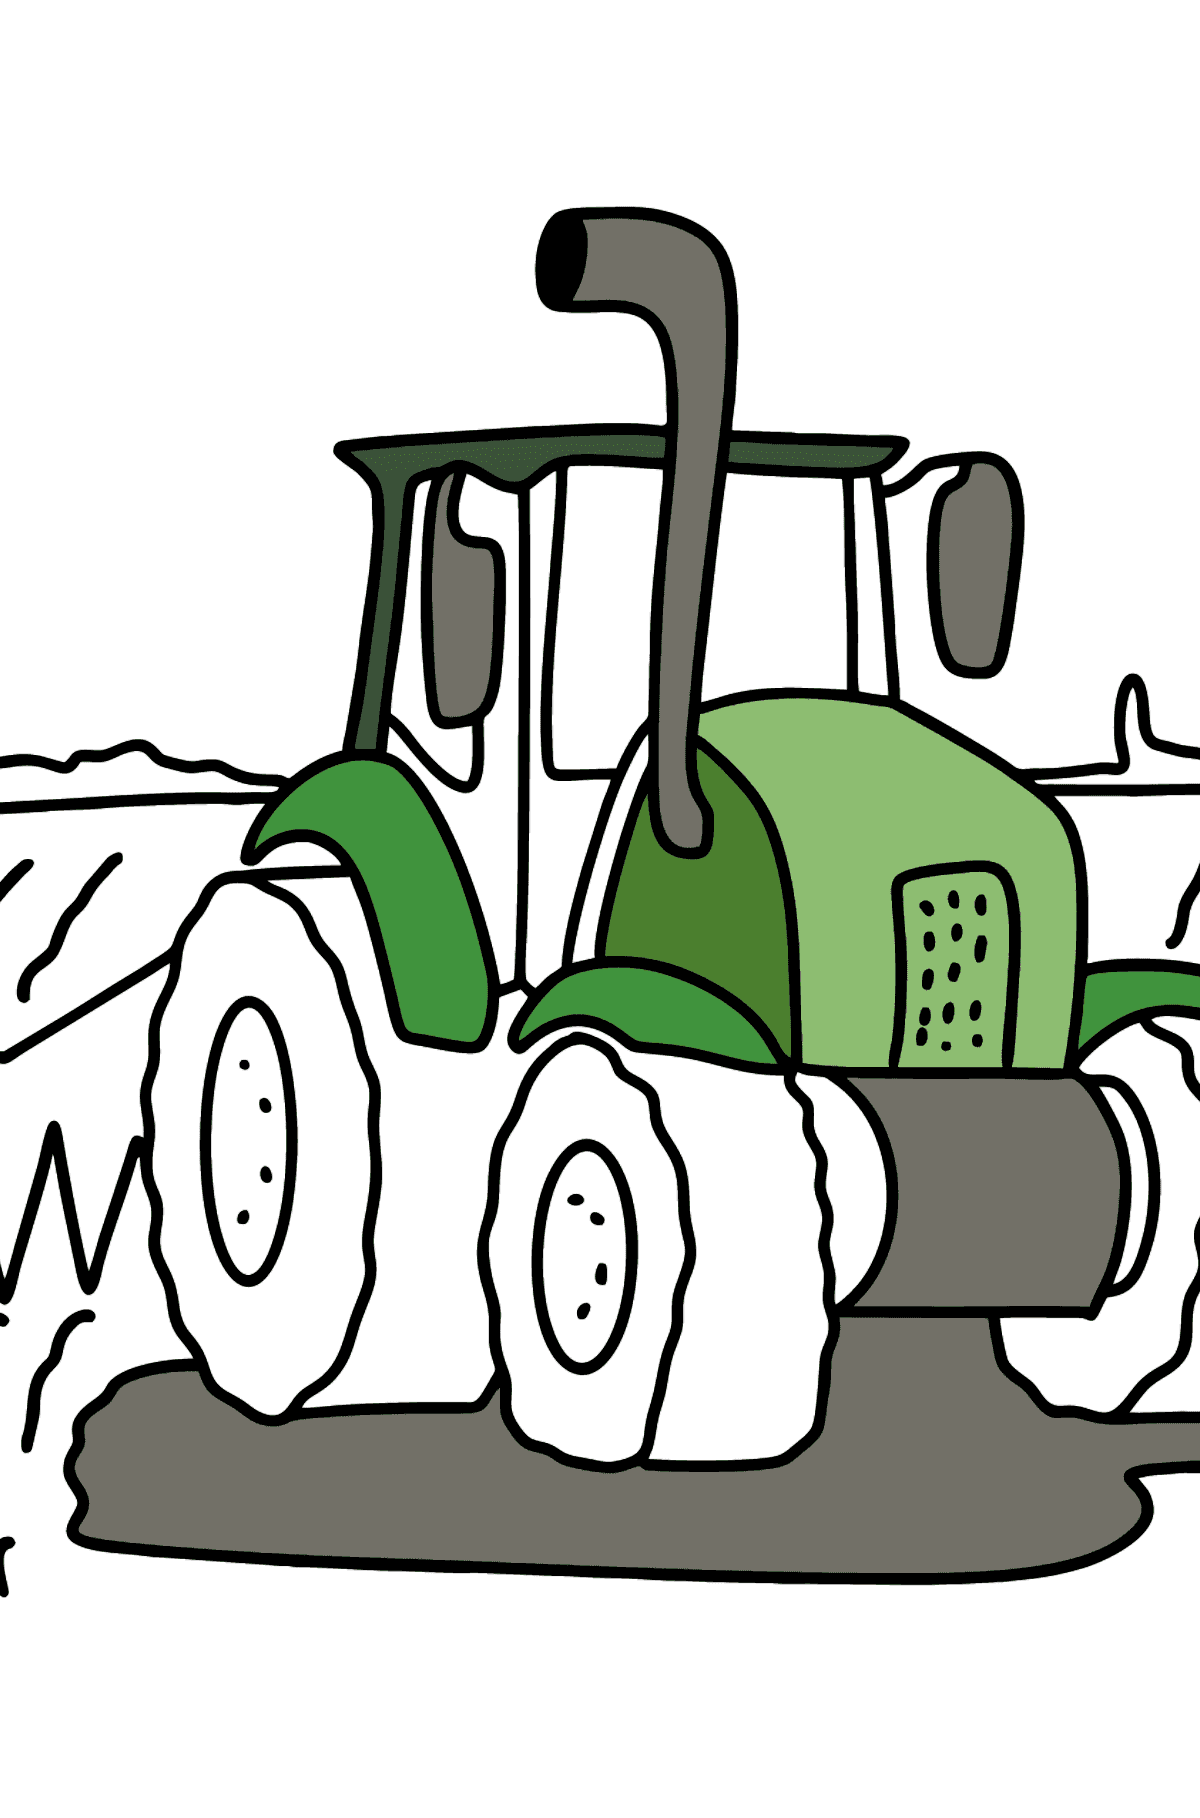 Tractor in the Field coloring page - Coloring Pages for Kids